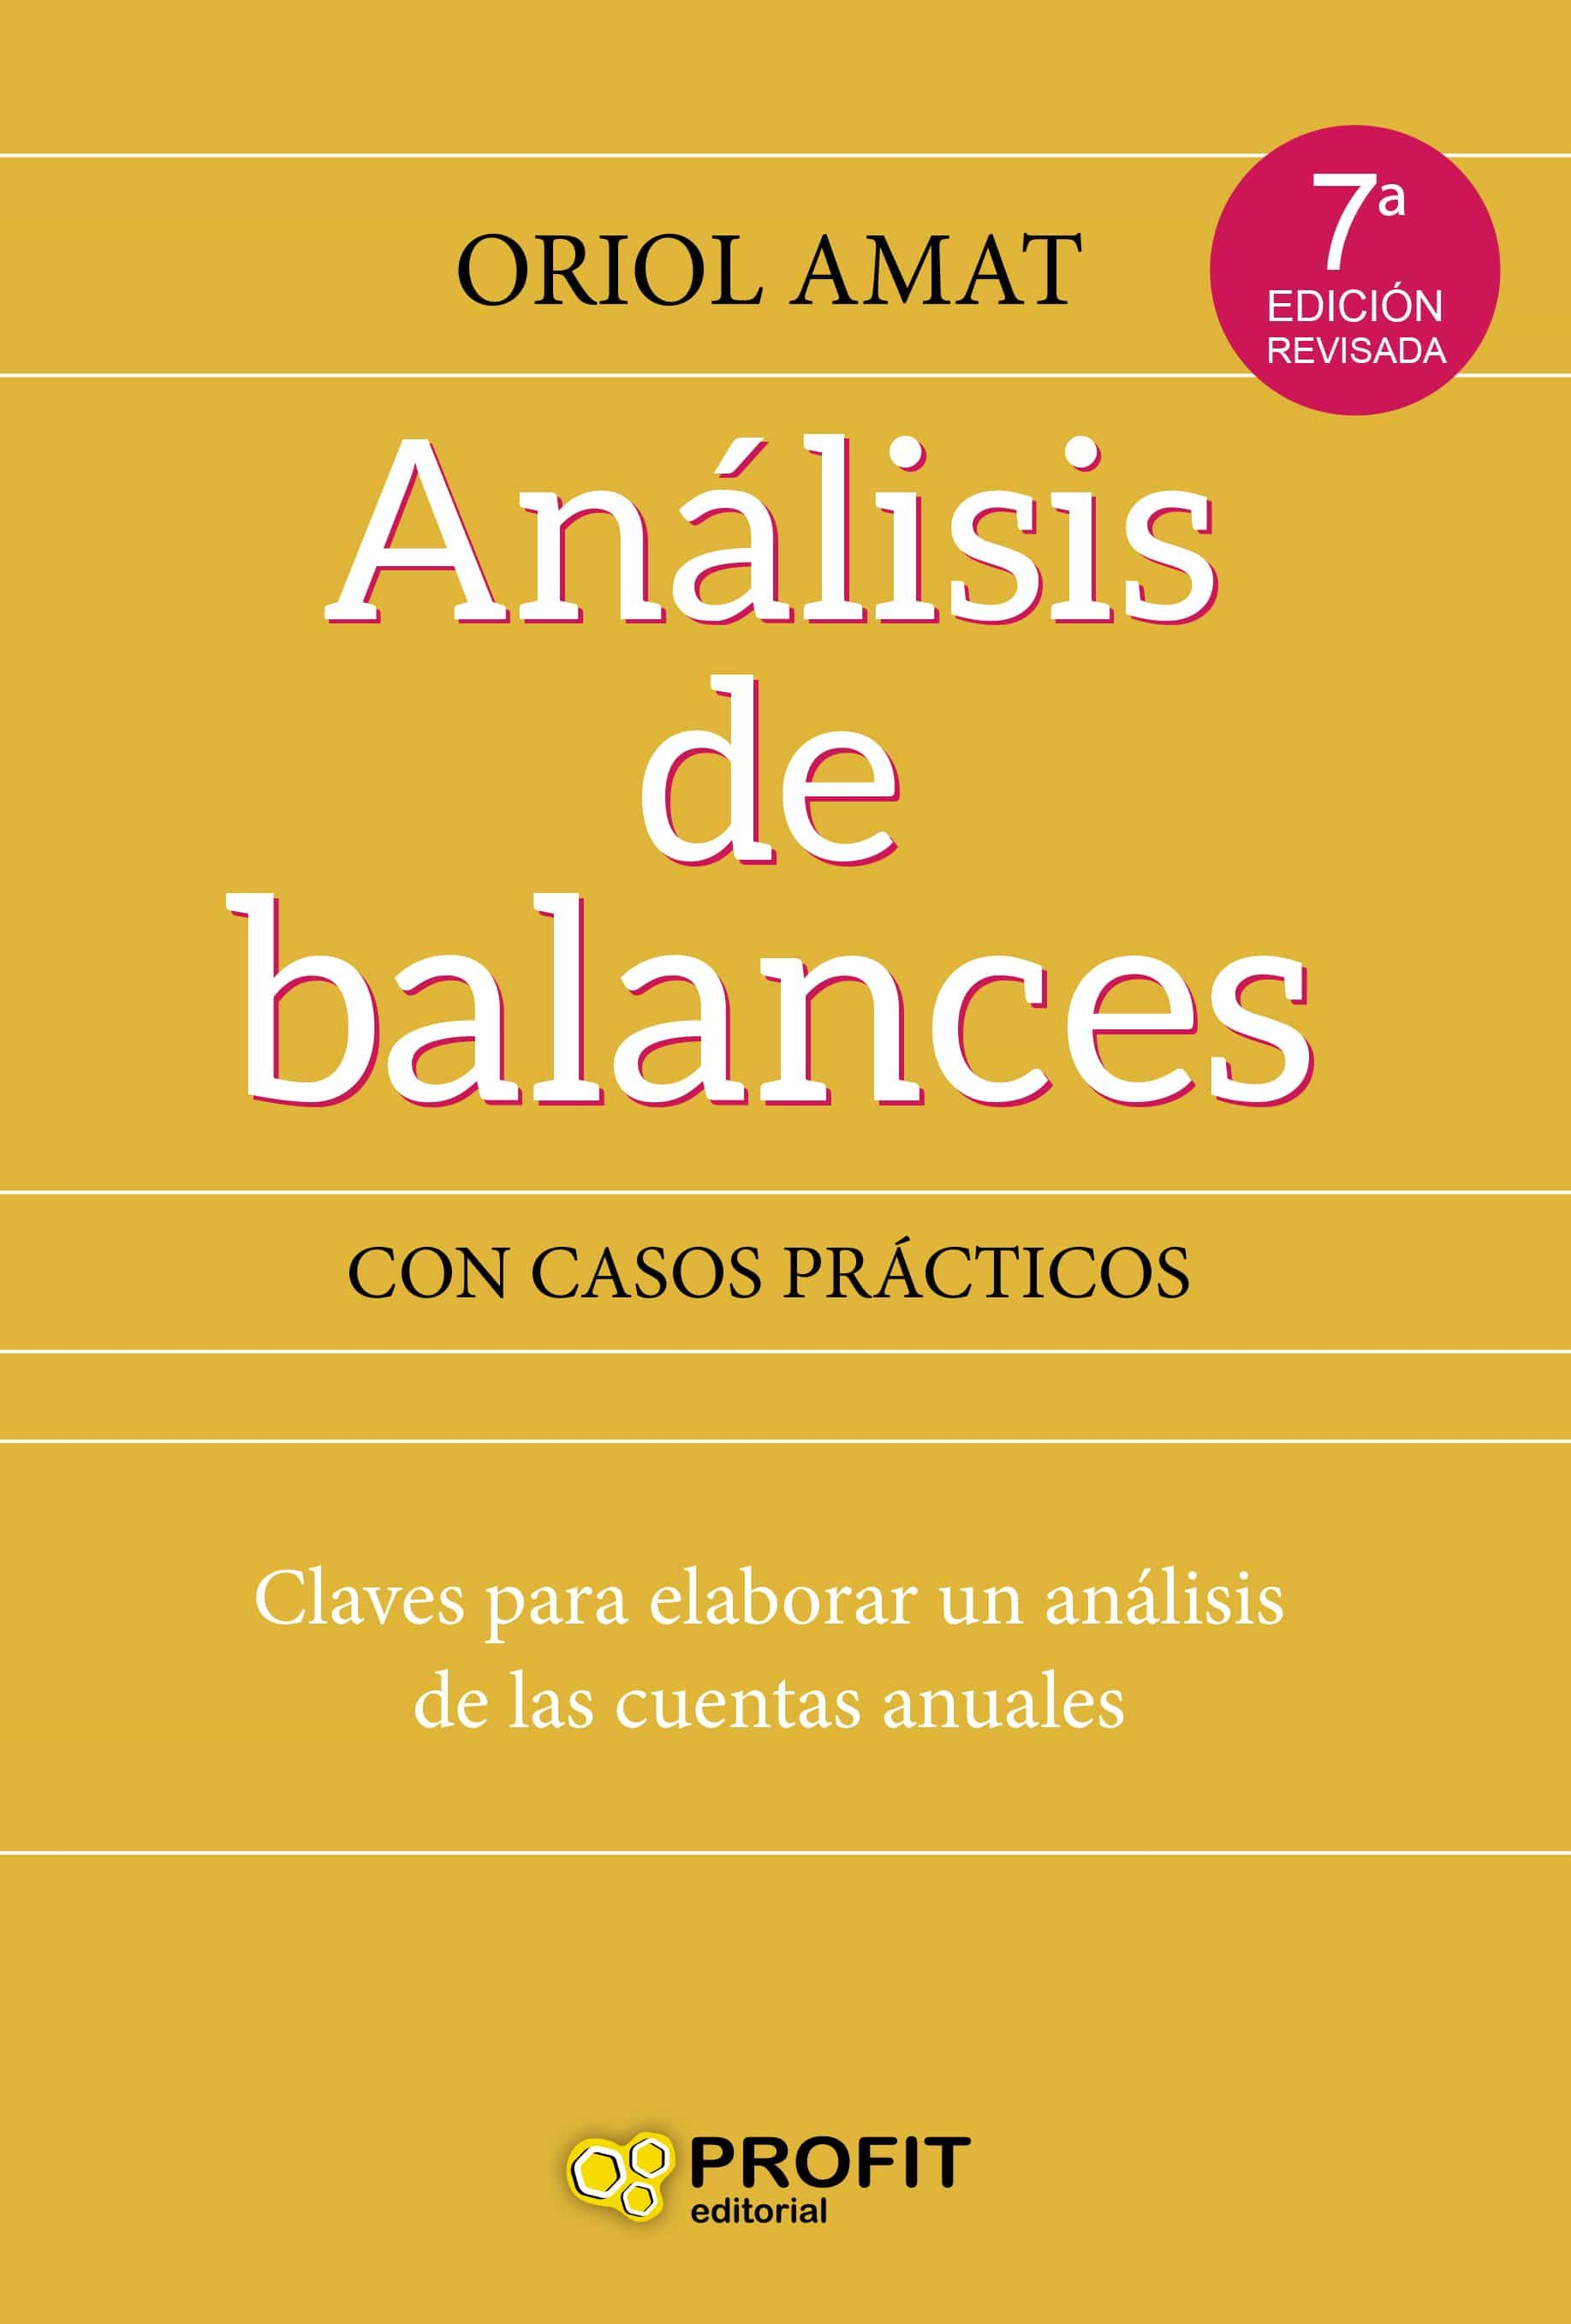 An lisis de balances ebook ebooks el corte ingl s for Analisis de balances